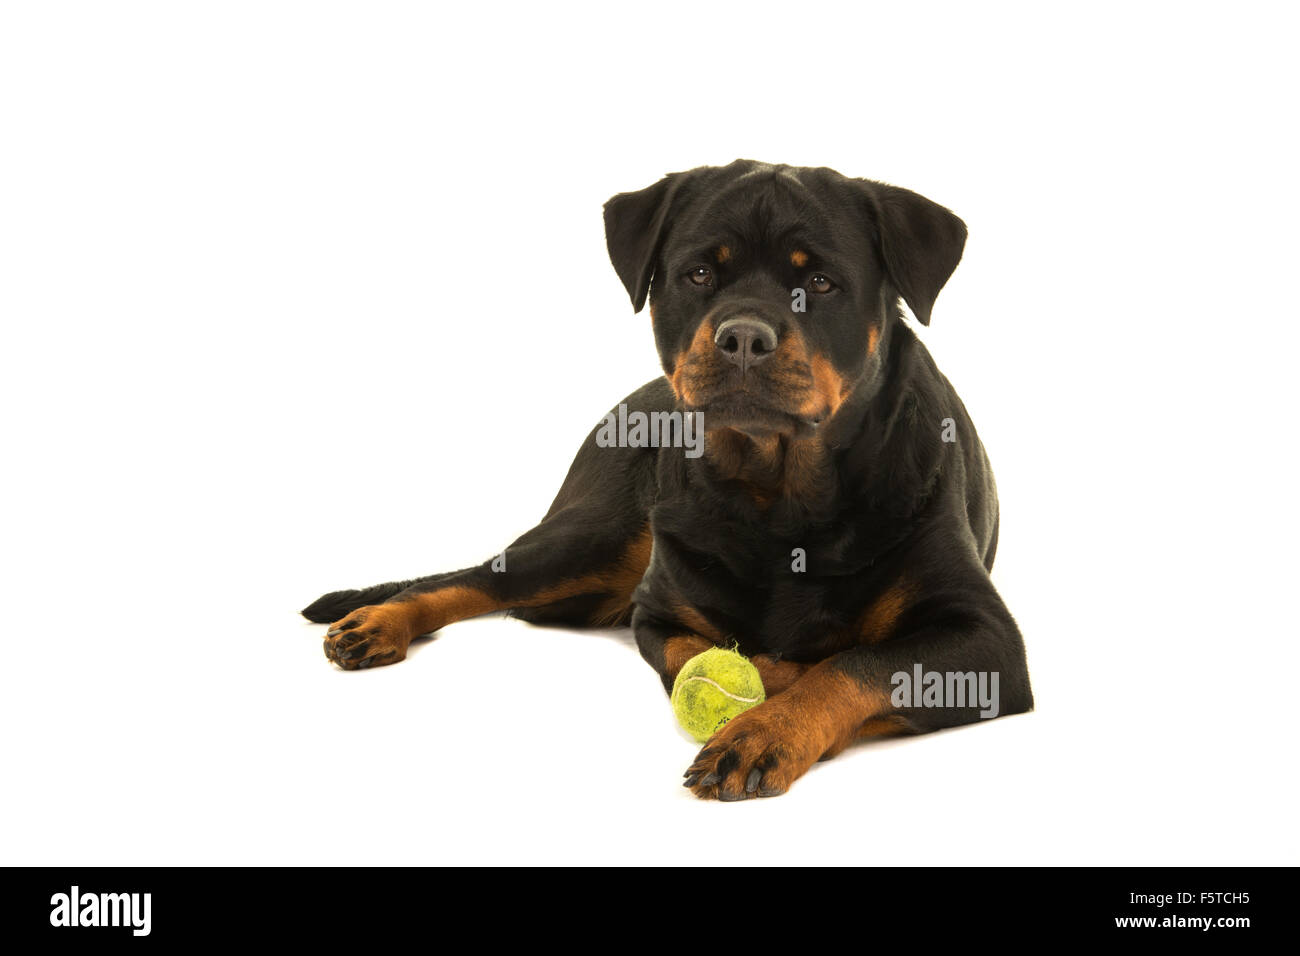 Rottweiler dog facing the camera lying down with her ball isolated on a white background - Stock Image